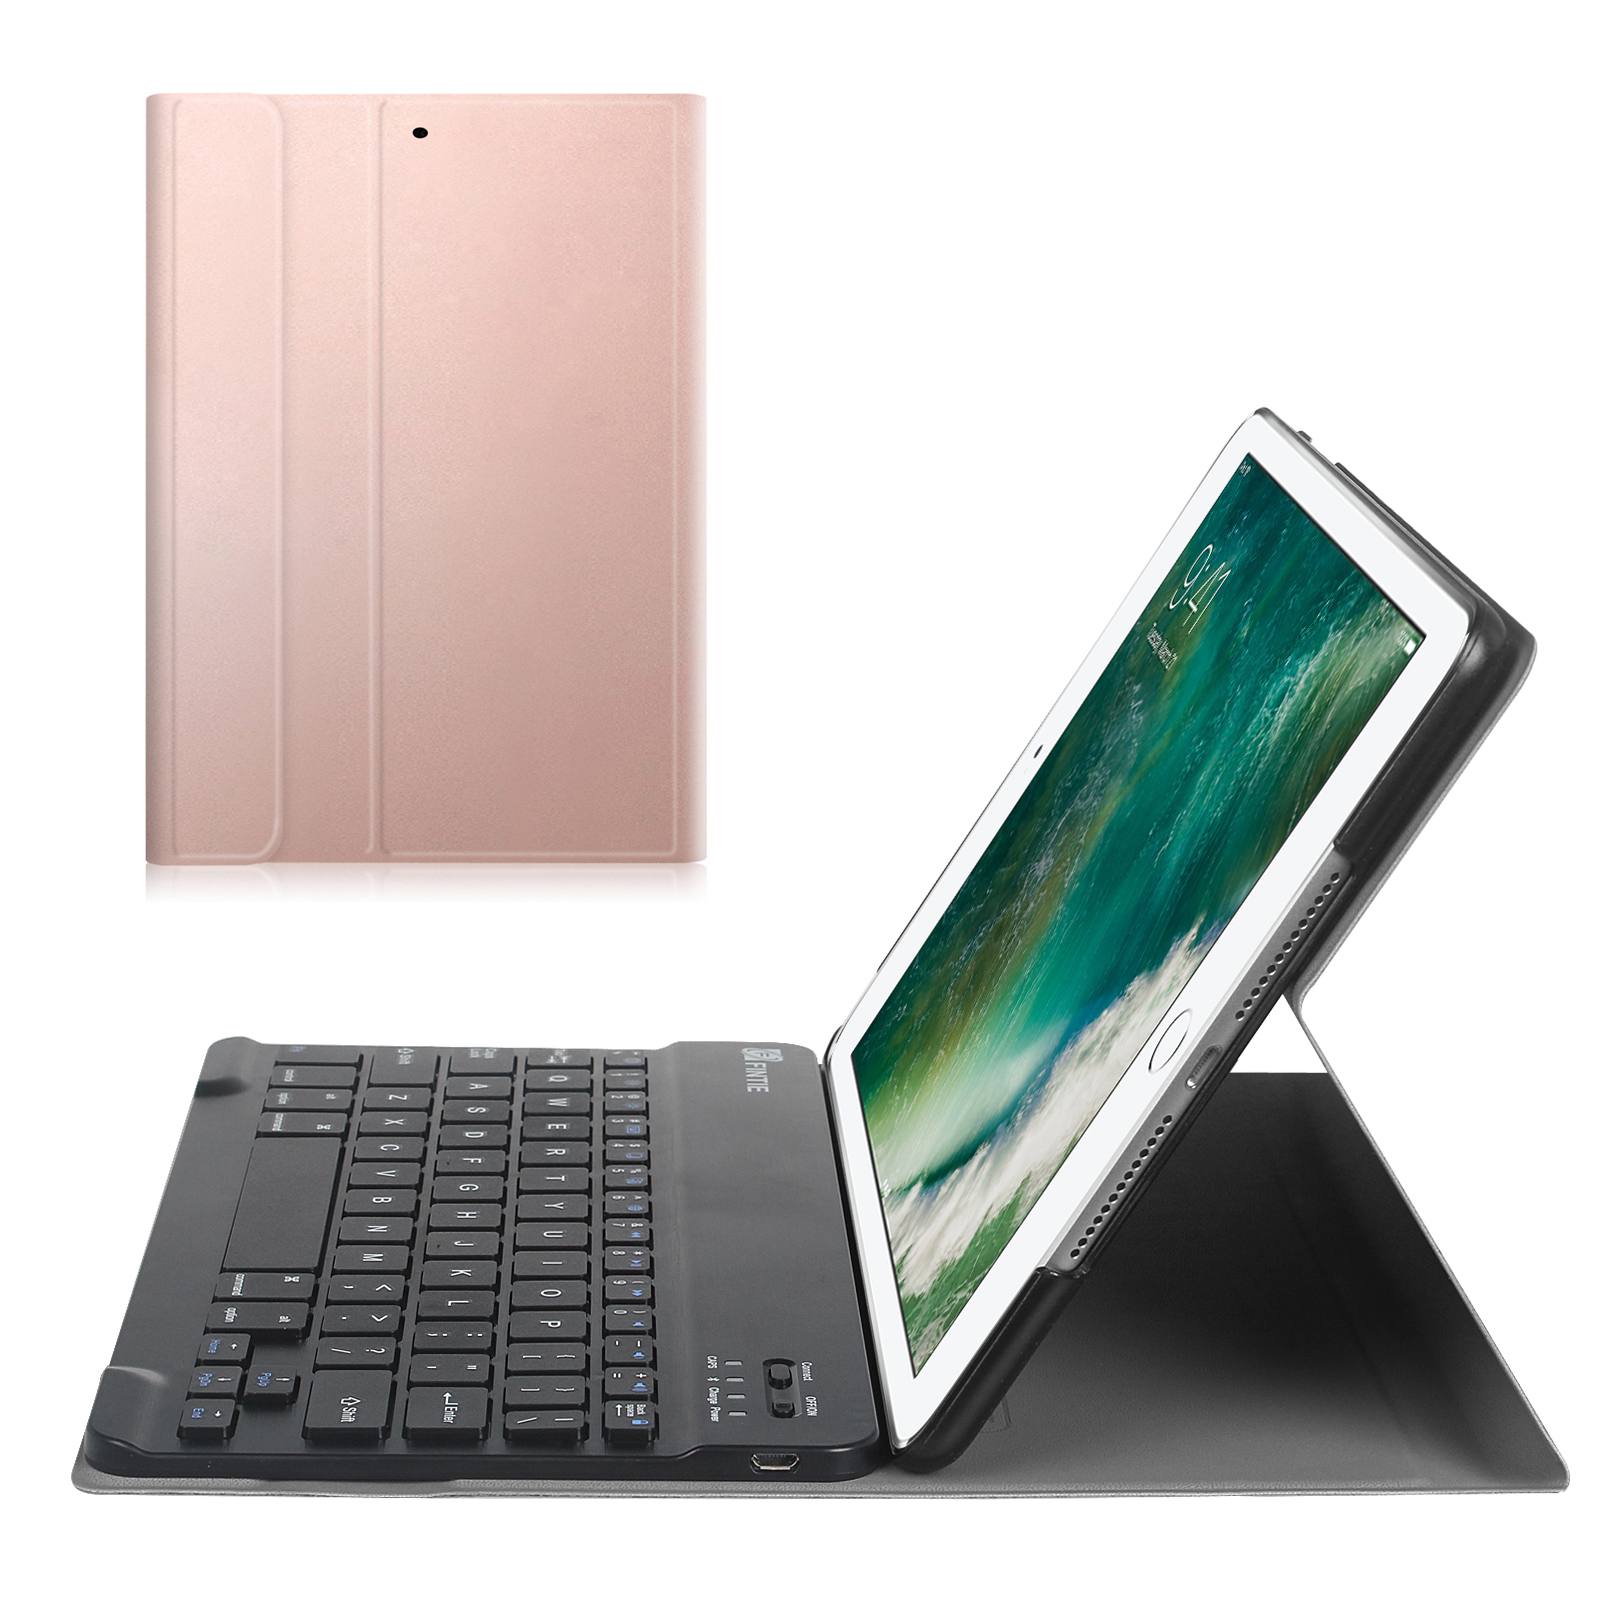 Fintie SlimShell Keyboard Case Cover for iPad 9.7 Inch 6th Gen 2018 / 5th Gen 2017 / iPad Air 2 / iPad Air, Rose Gold